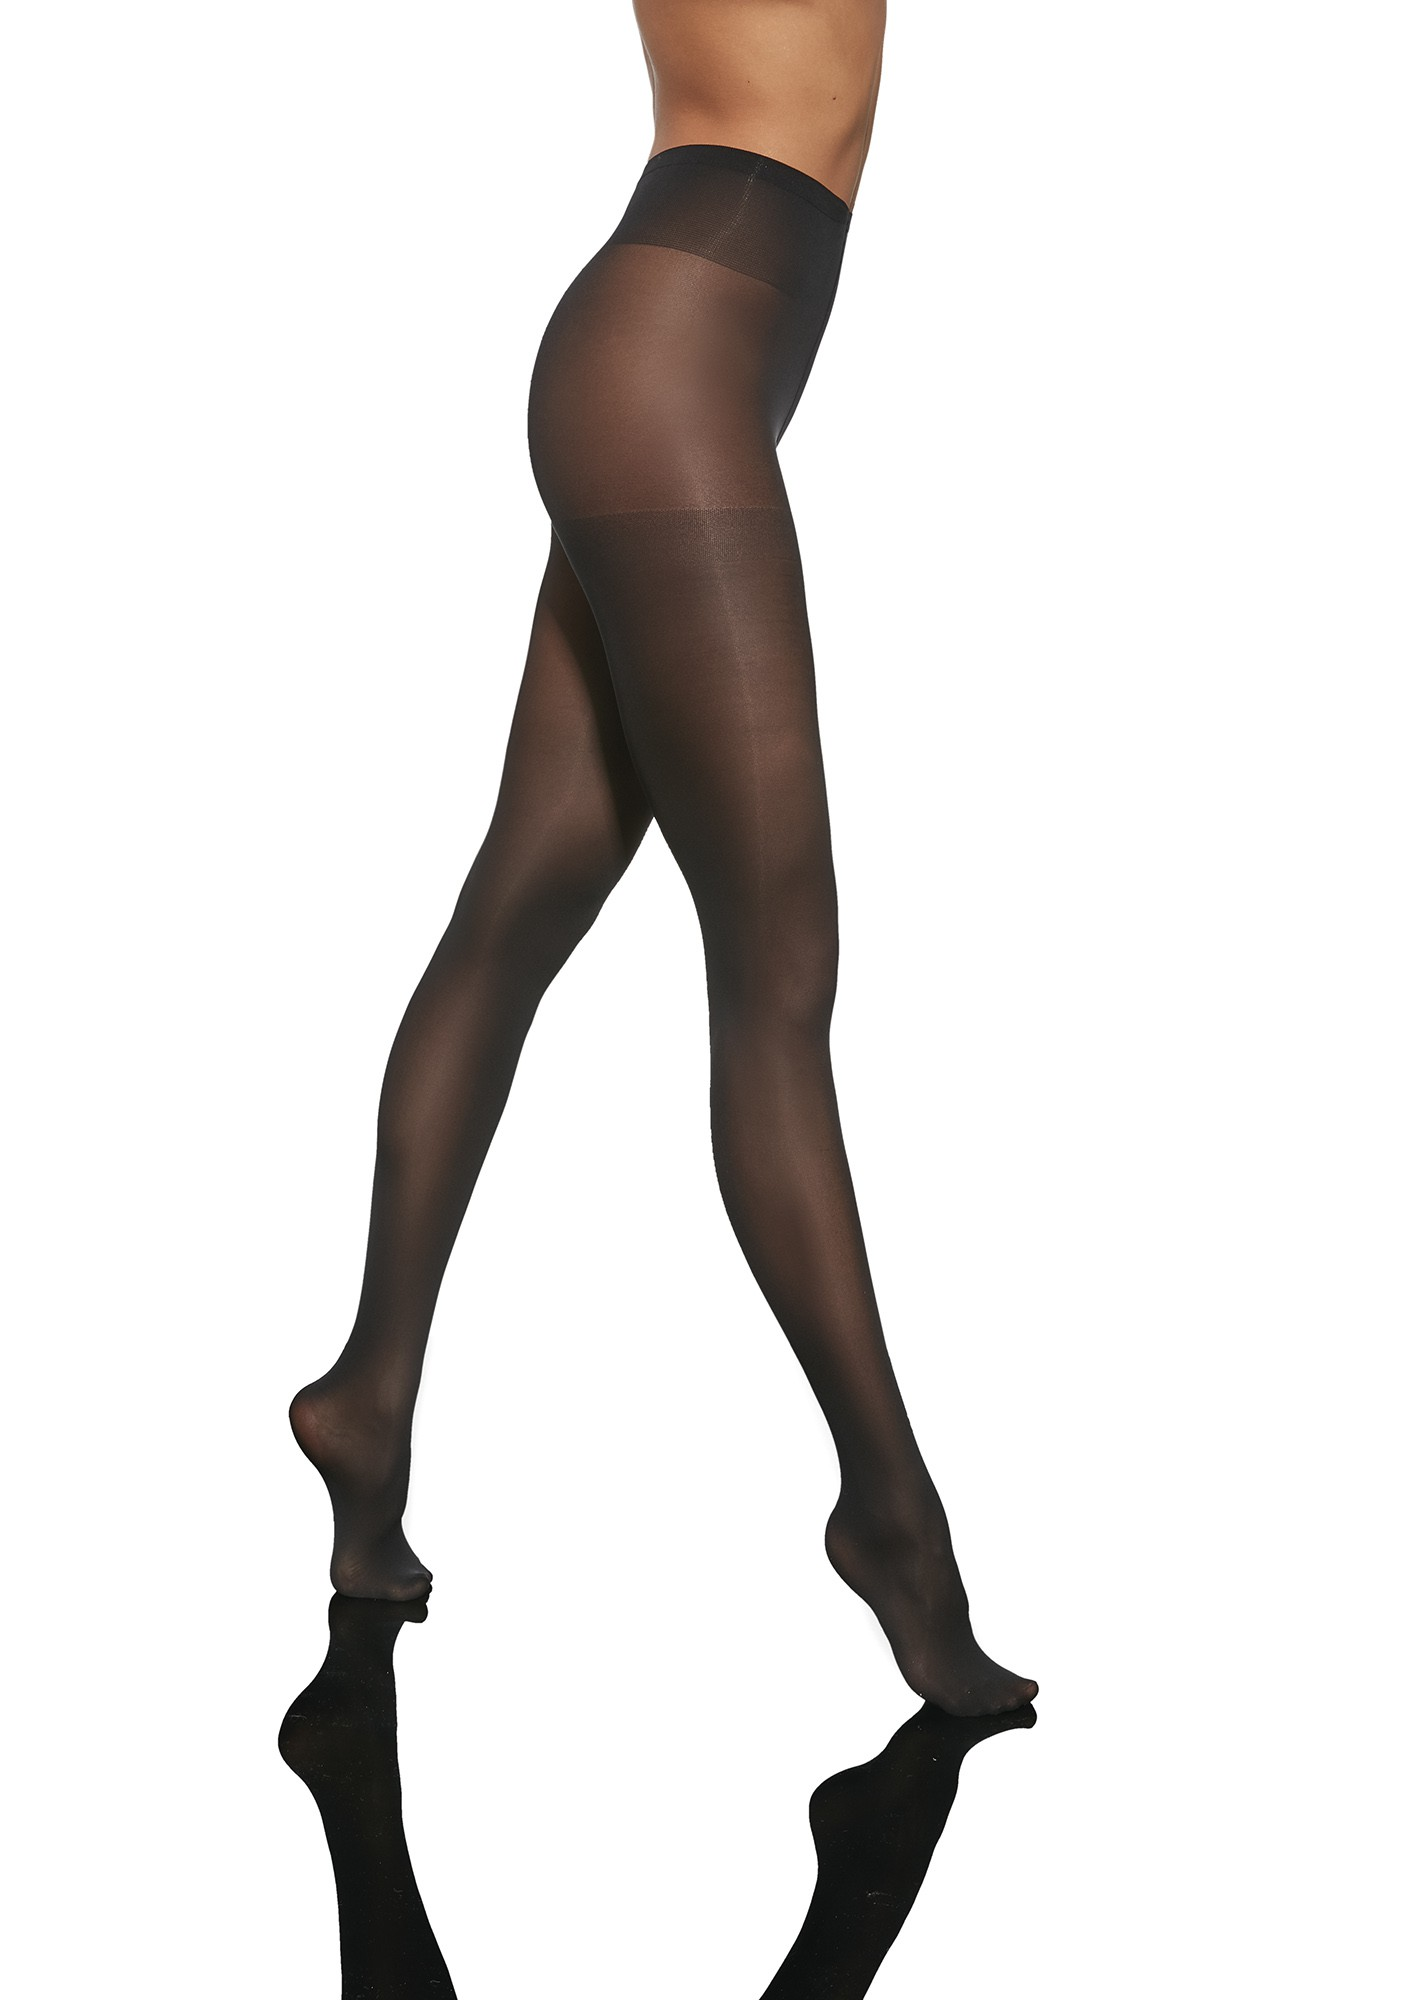 Collant fantaisie femme Opaque Hiver Classe Micro 80 f196ed5036a